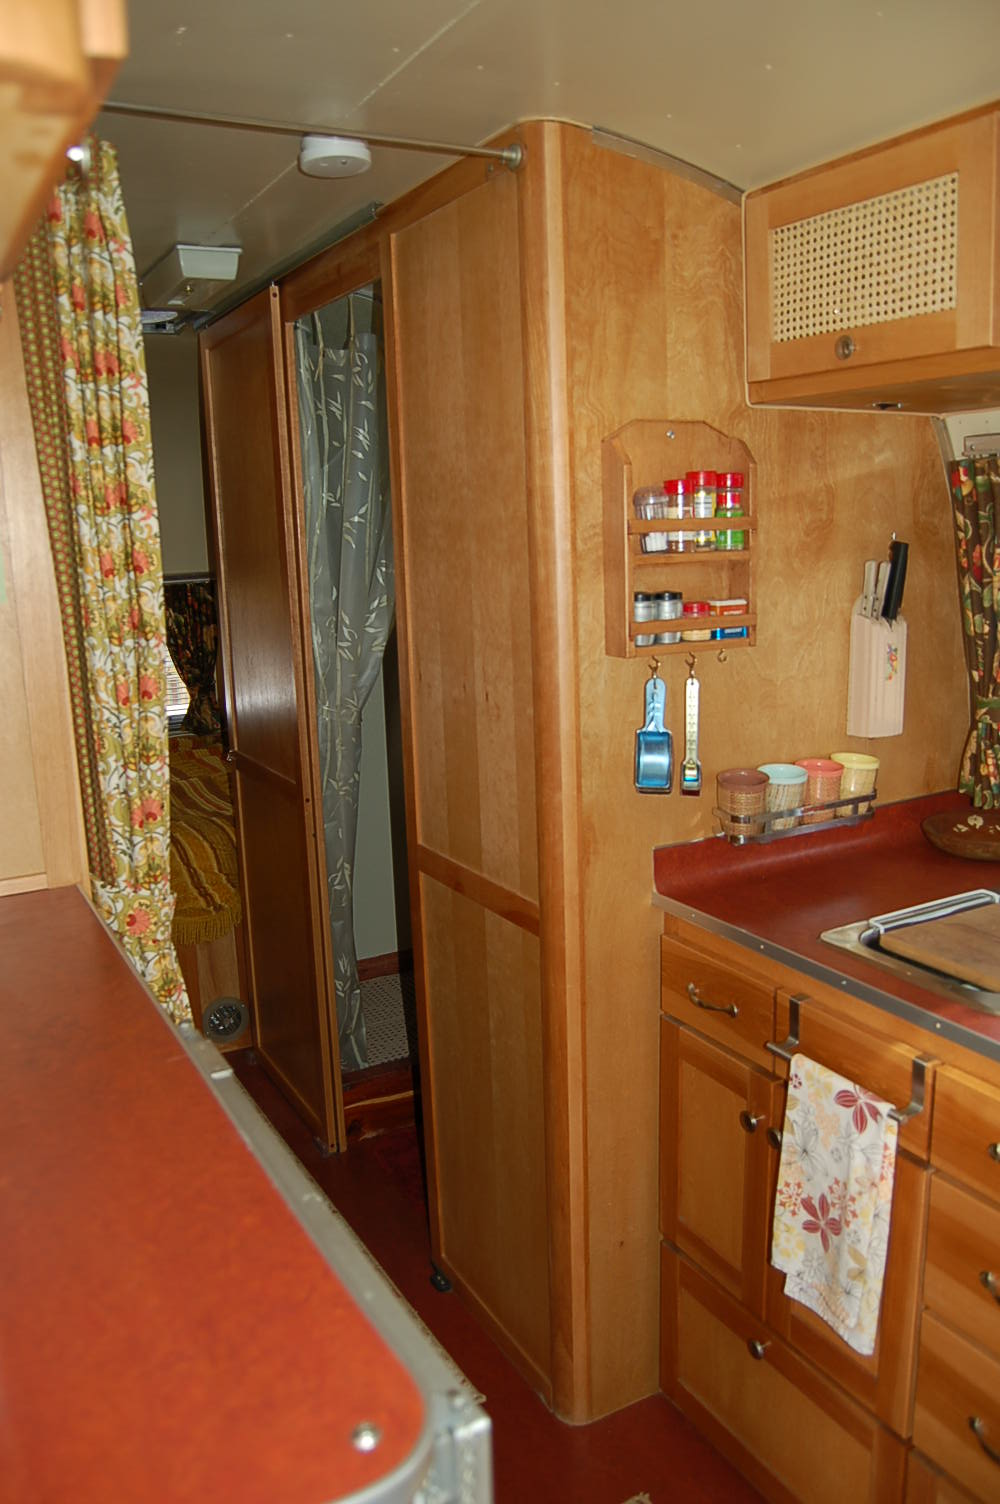 Vintage Airstream Trailer Interiors, from OldTrailer com